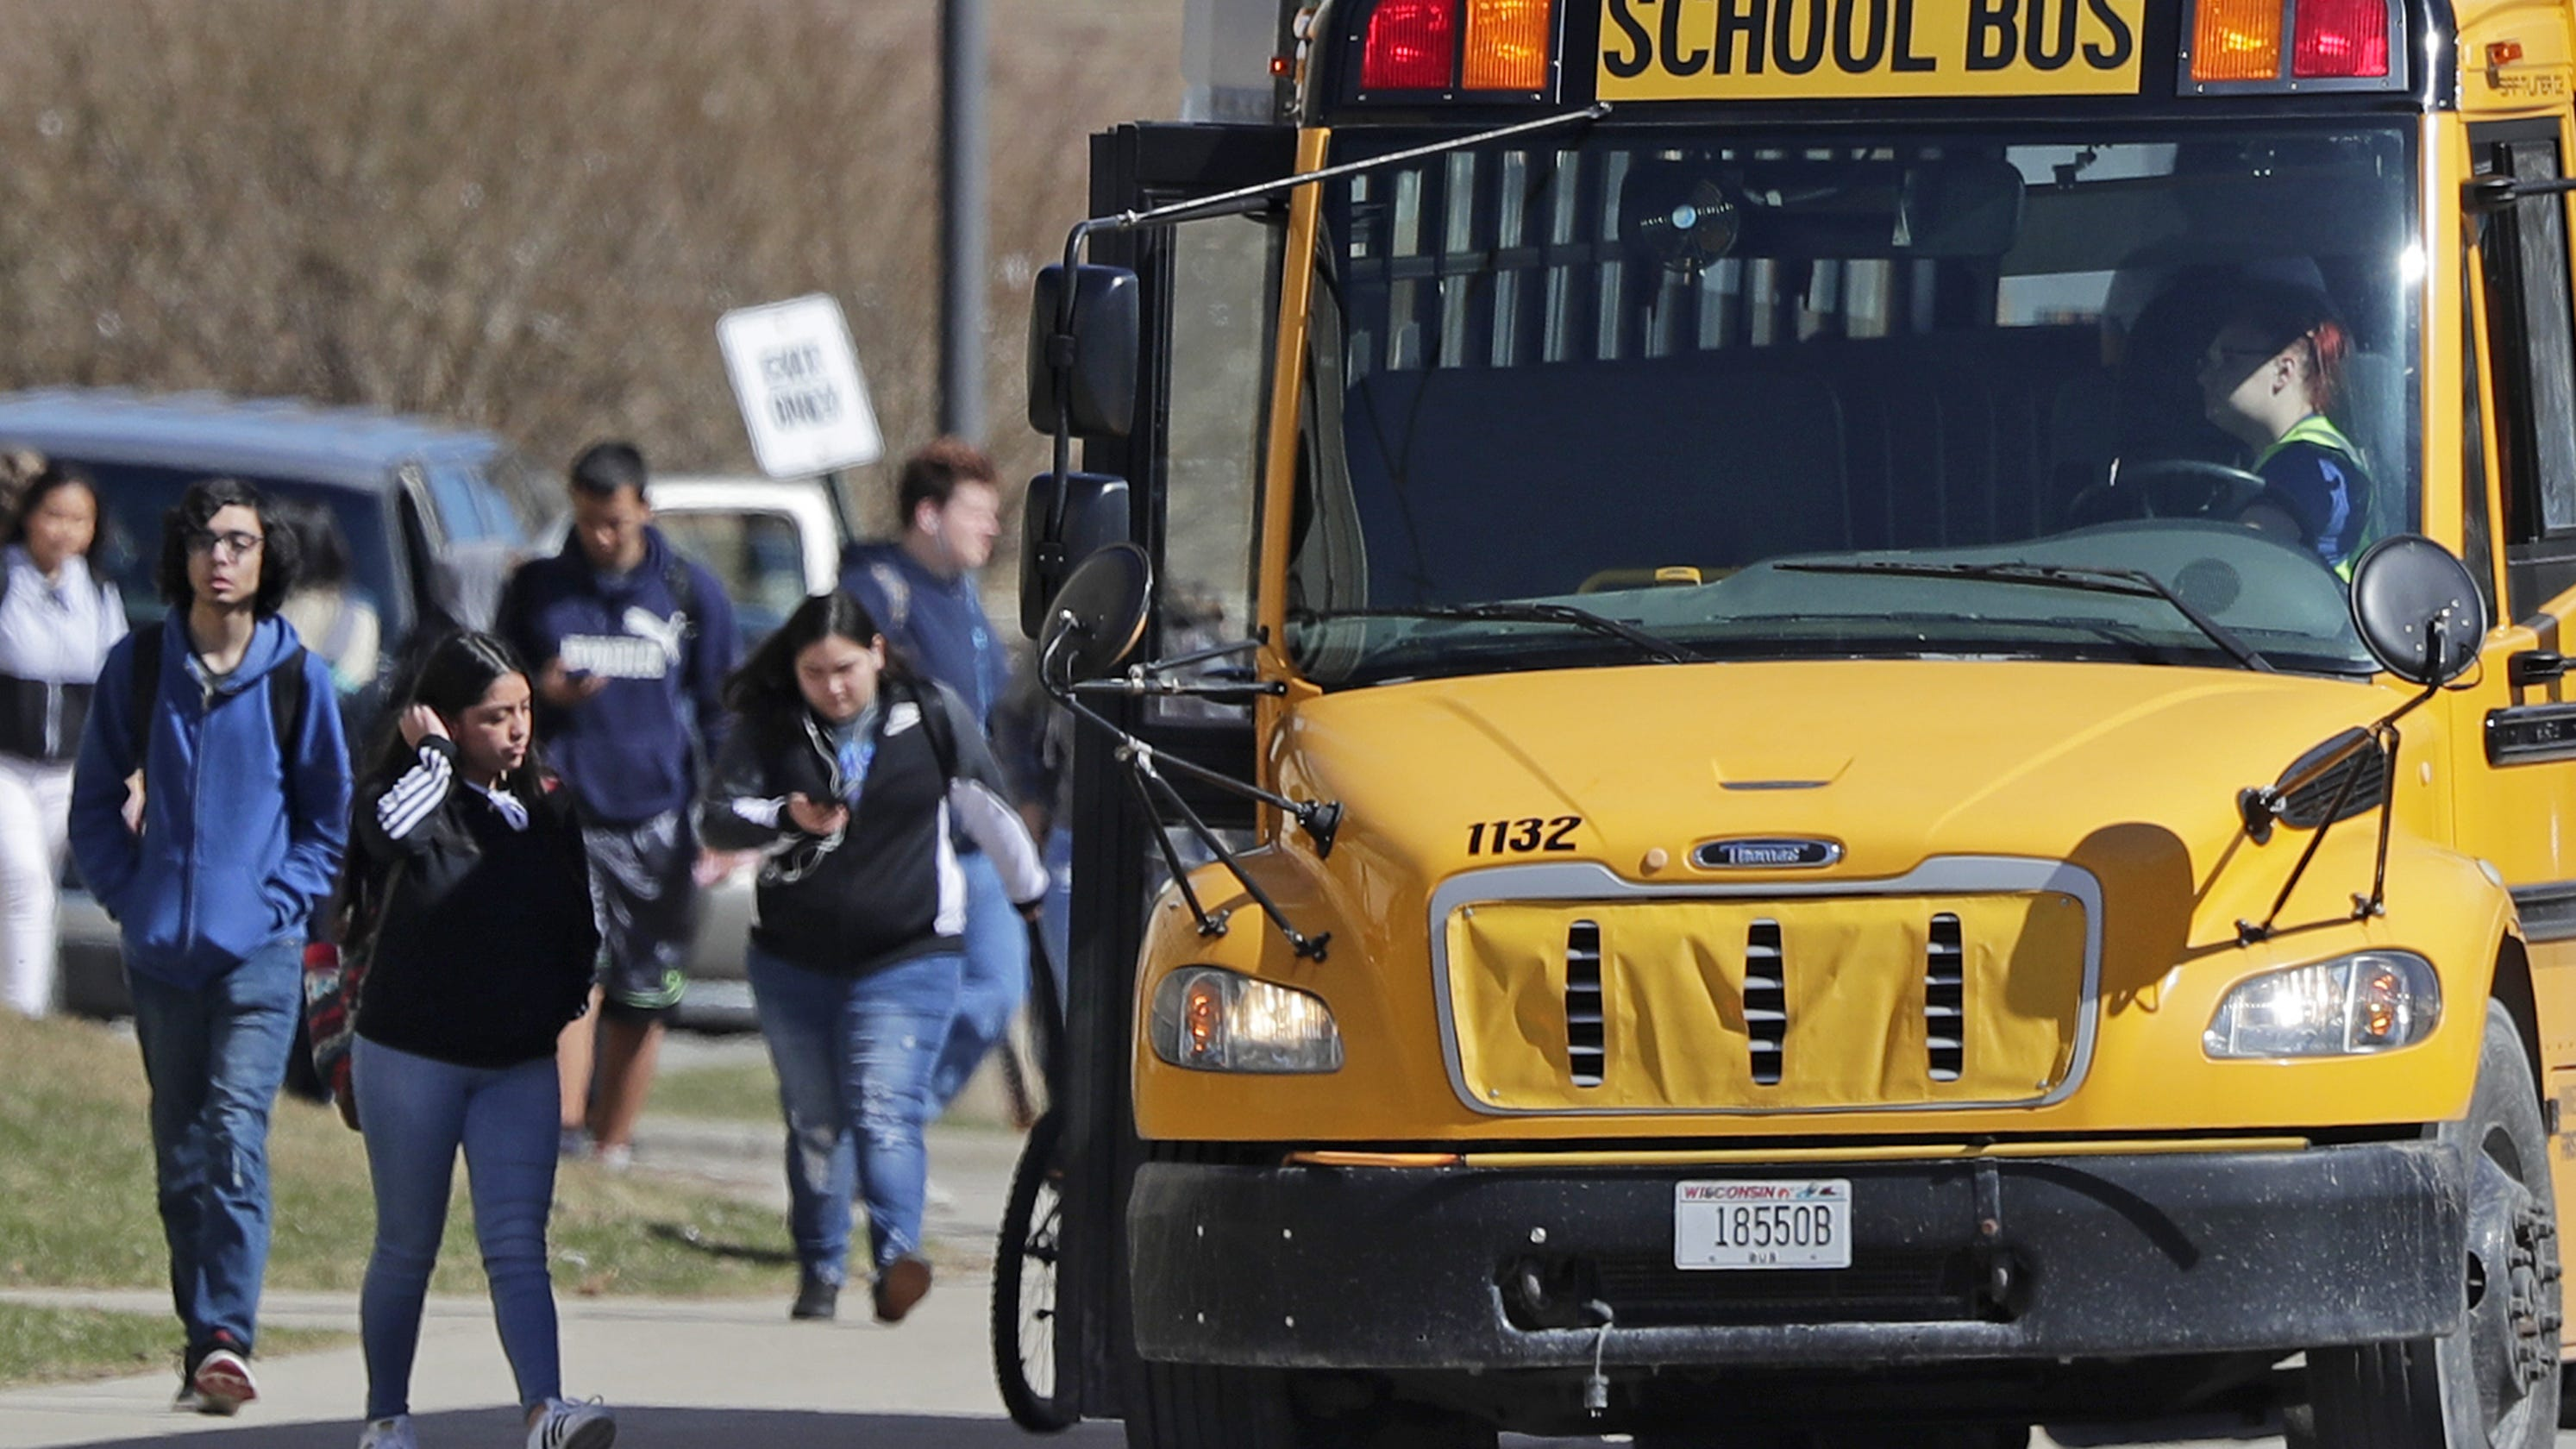 Kids in Crisis: Wisconsin students grapple with bullying on school bus